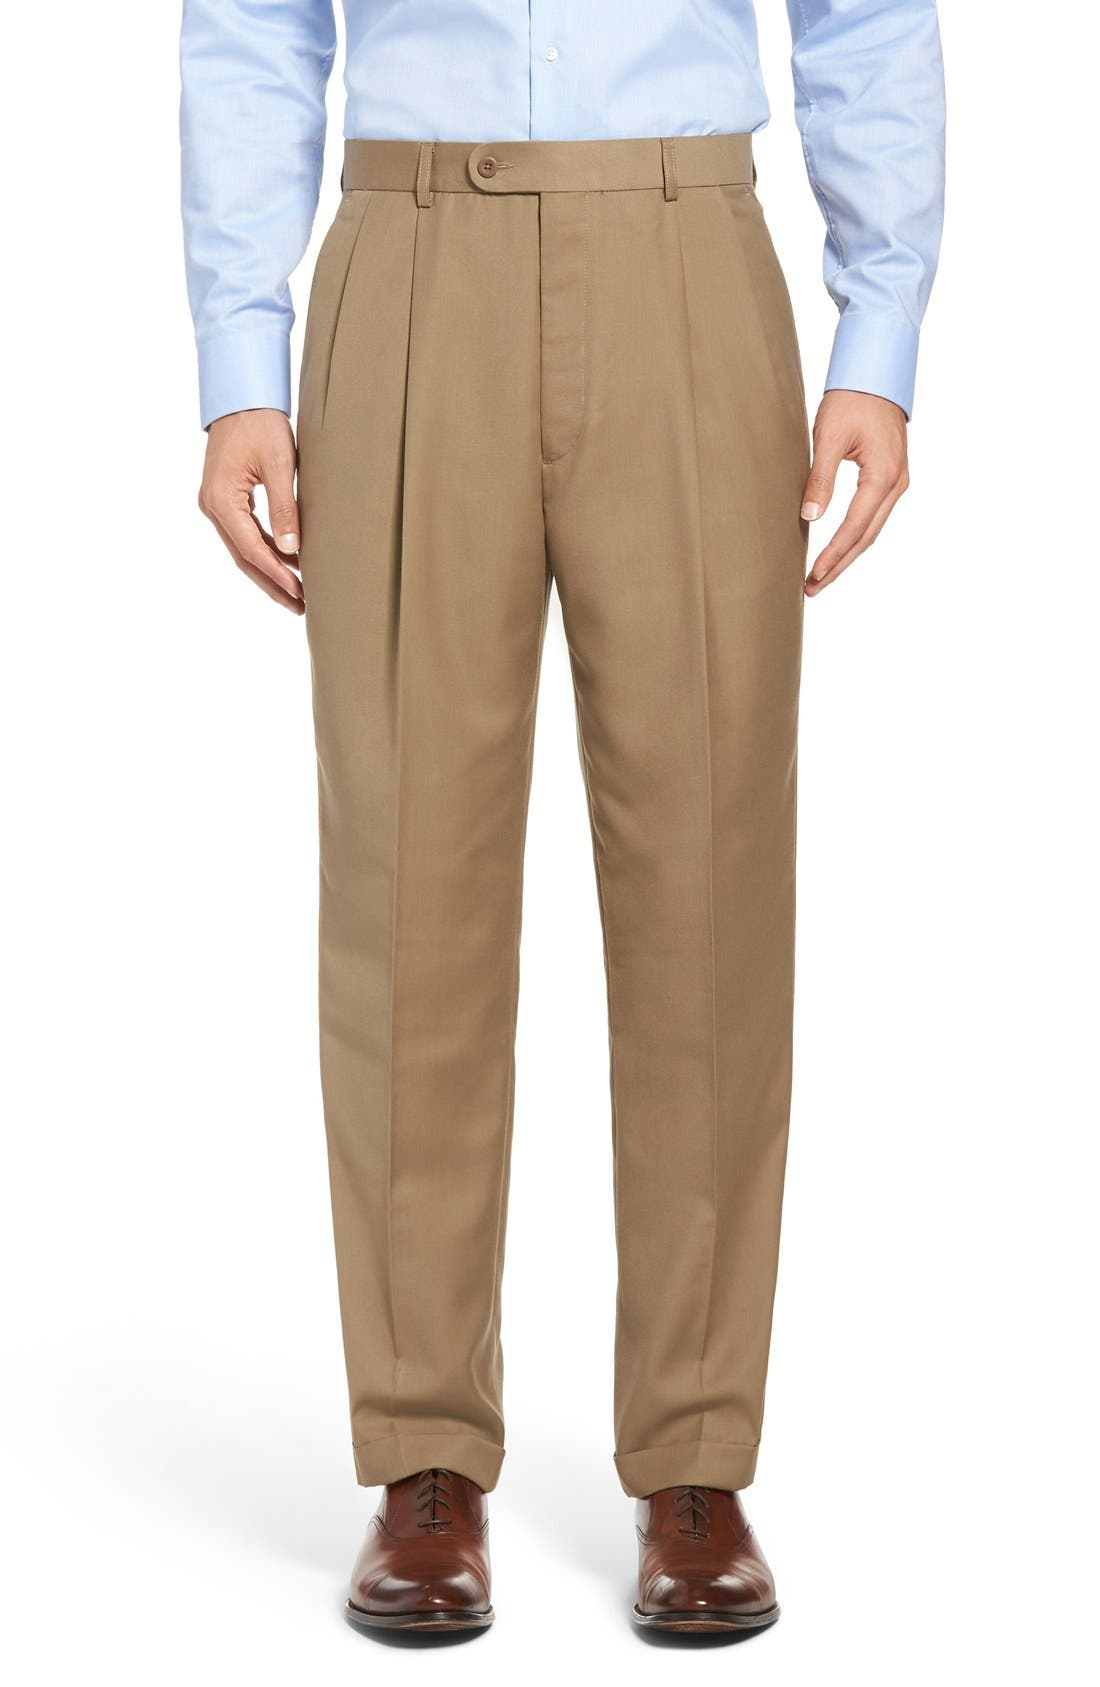 Alternate Image 1 Selected - Linea Naturale Pleated Microfiber Dress Pants